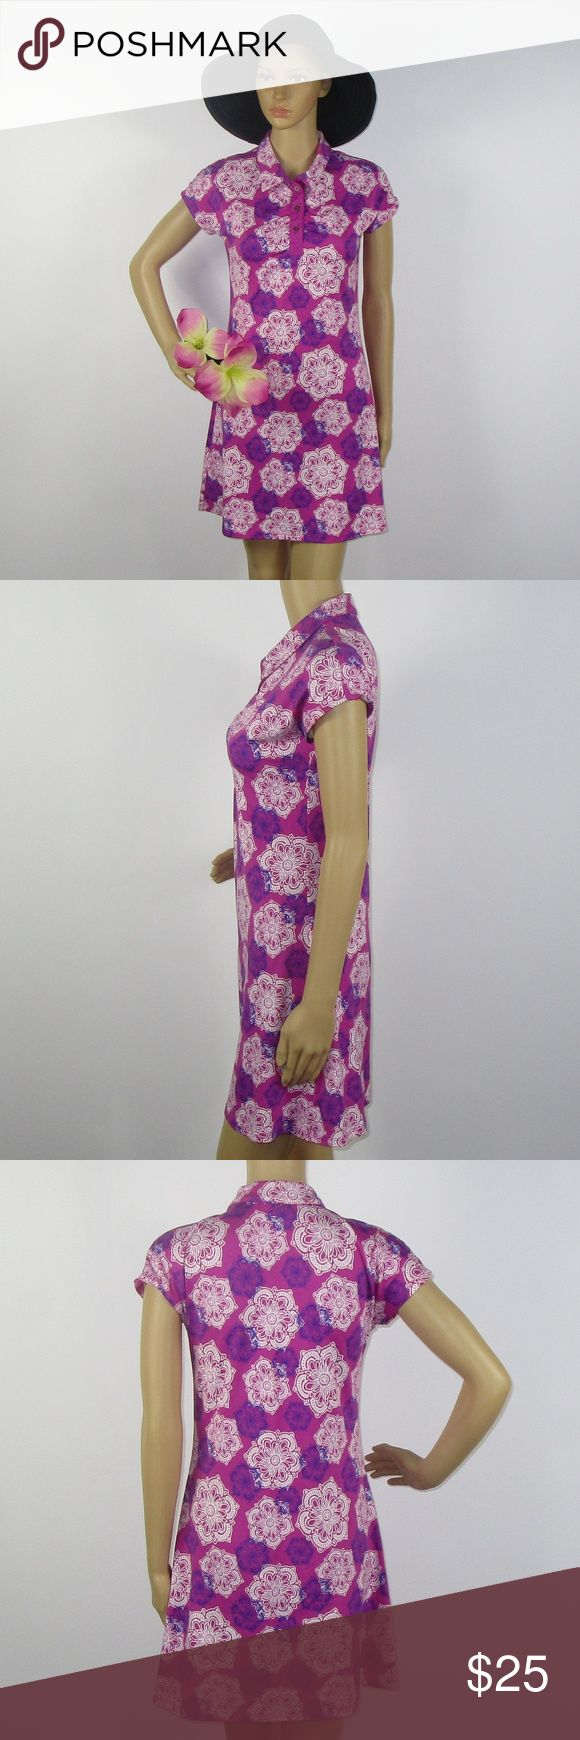 LOLA Activewear Geo Floral Print Athletic Dress XS This cute dress is in excellent condition! As always offers and bundles are welcome. Feel free to add one or more items to a bundle for a private discount offer!!!  Armpit to armpit is 17 inches across Waist is 14.5 inches across Hips are 18 inches across Length is 32 inches LOLA Dresses Mini